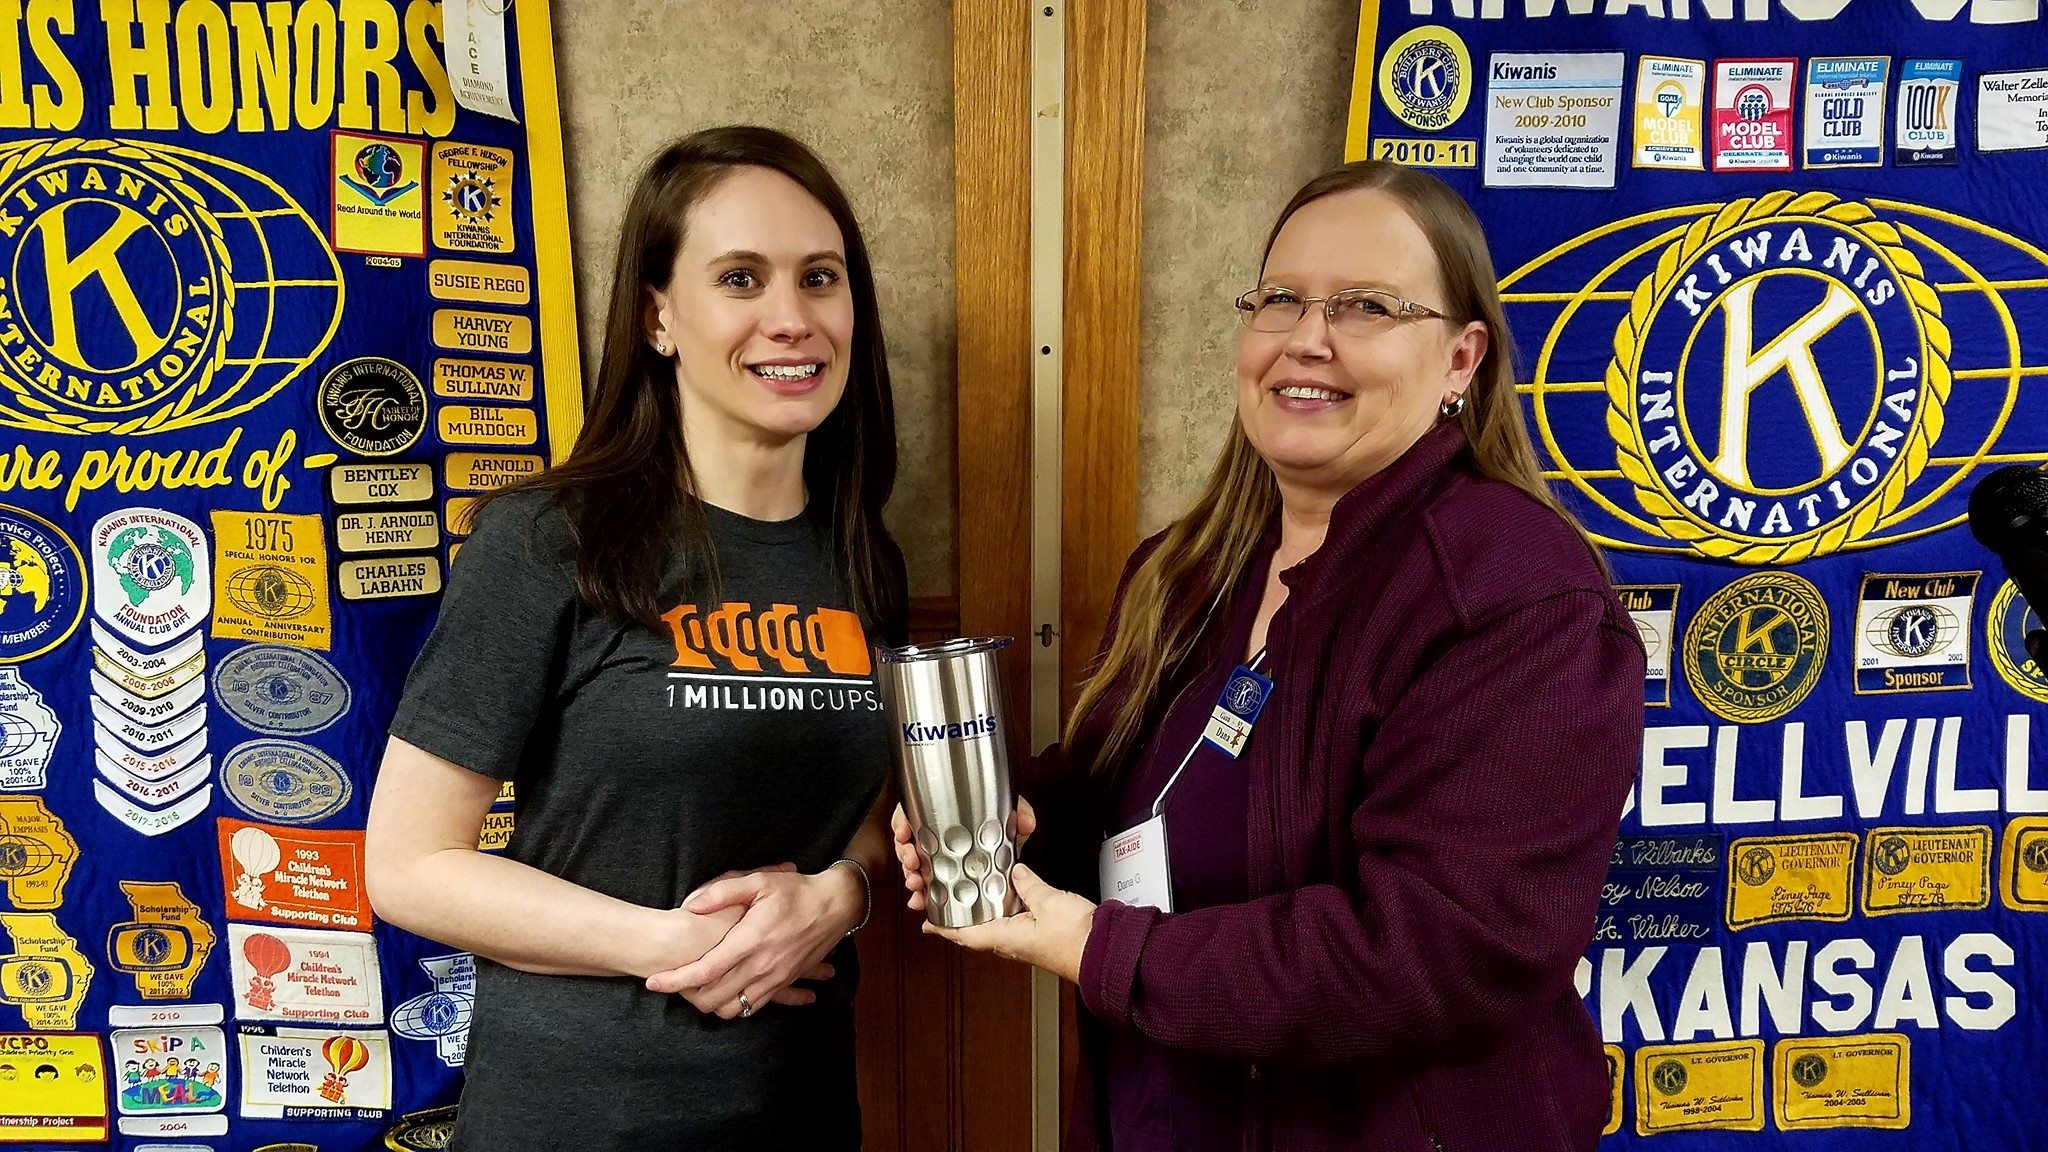 Tiffany Henry (left) after giving a presentation to the local Kiwanis chapter about 1 Million Cups.